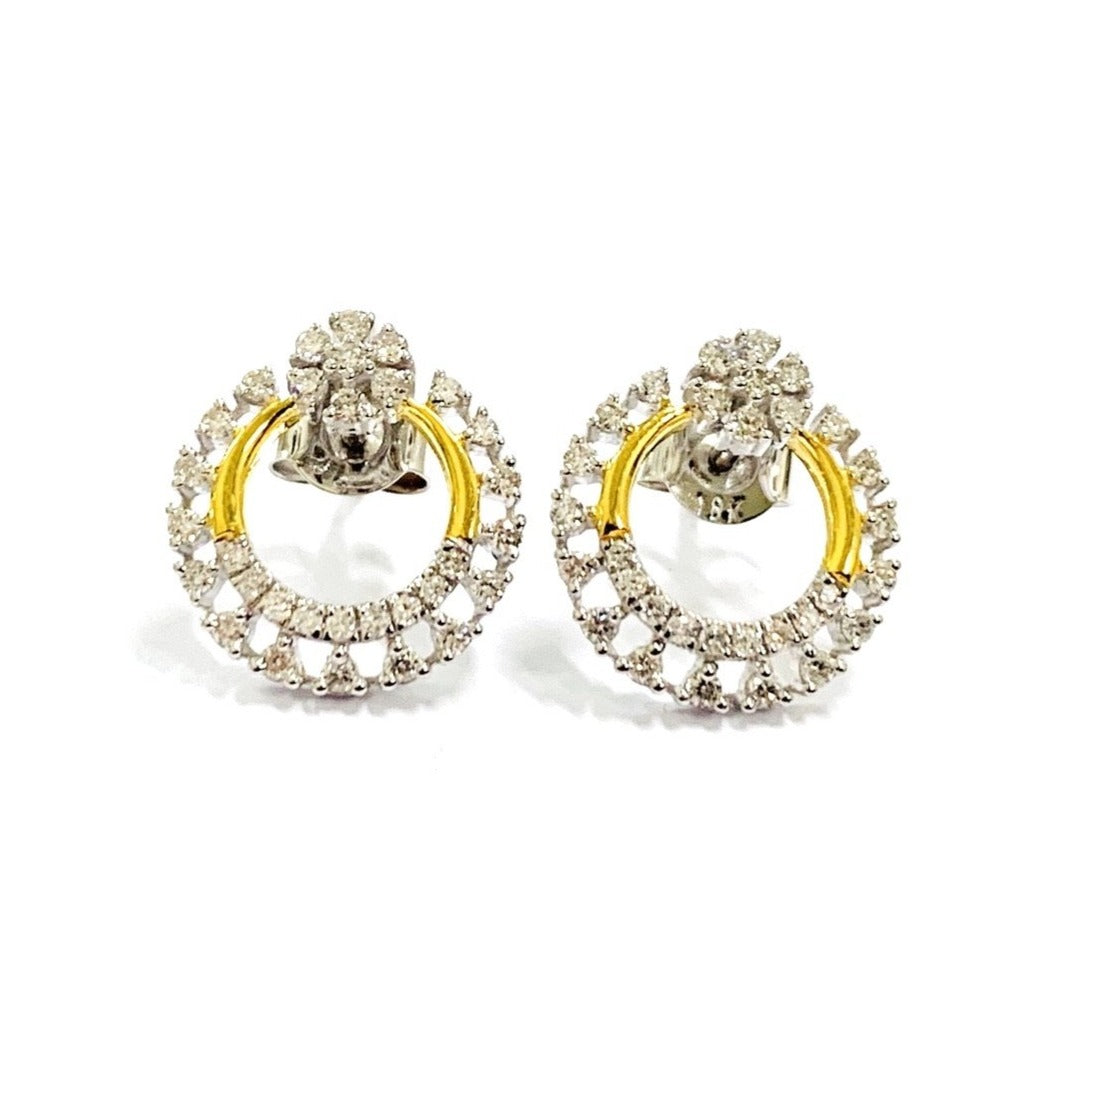 18ct Gold & Diamond Earrings